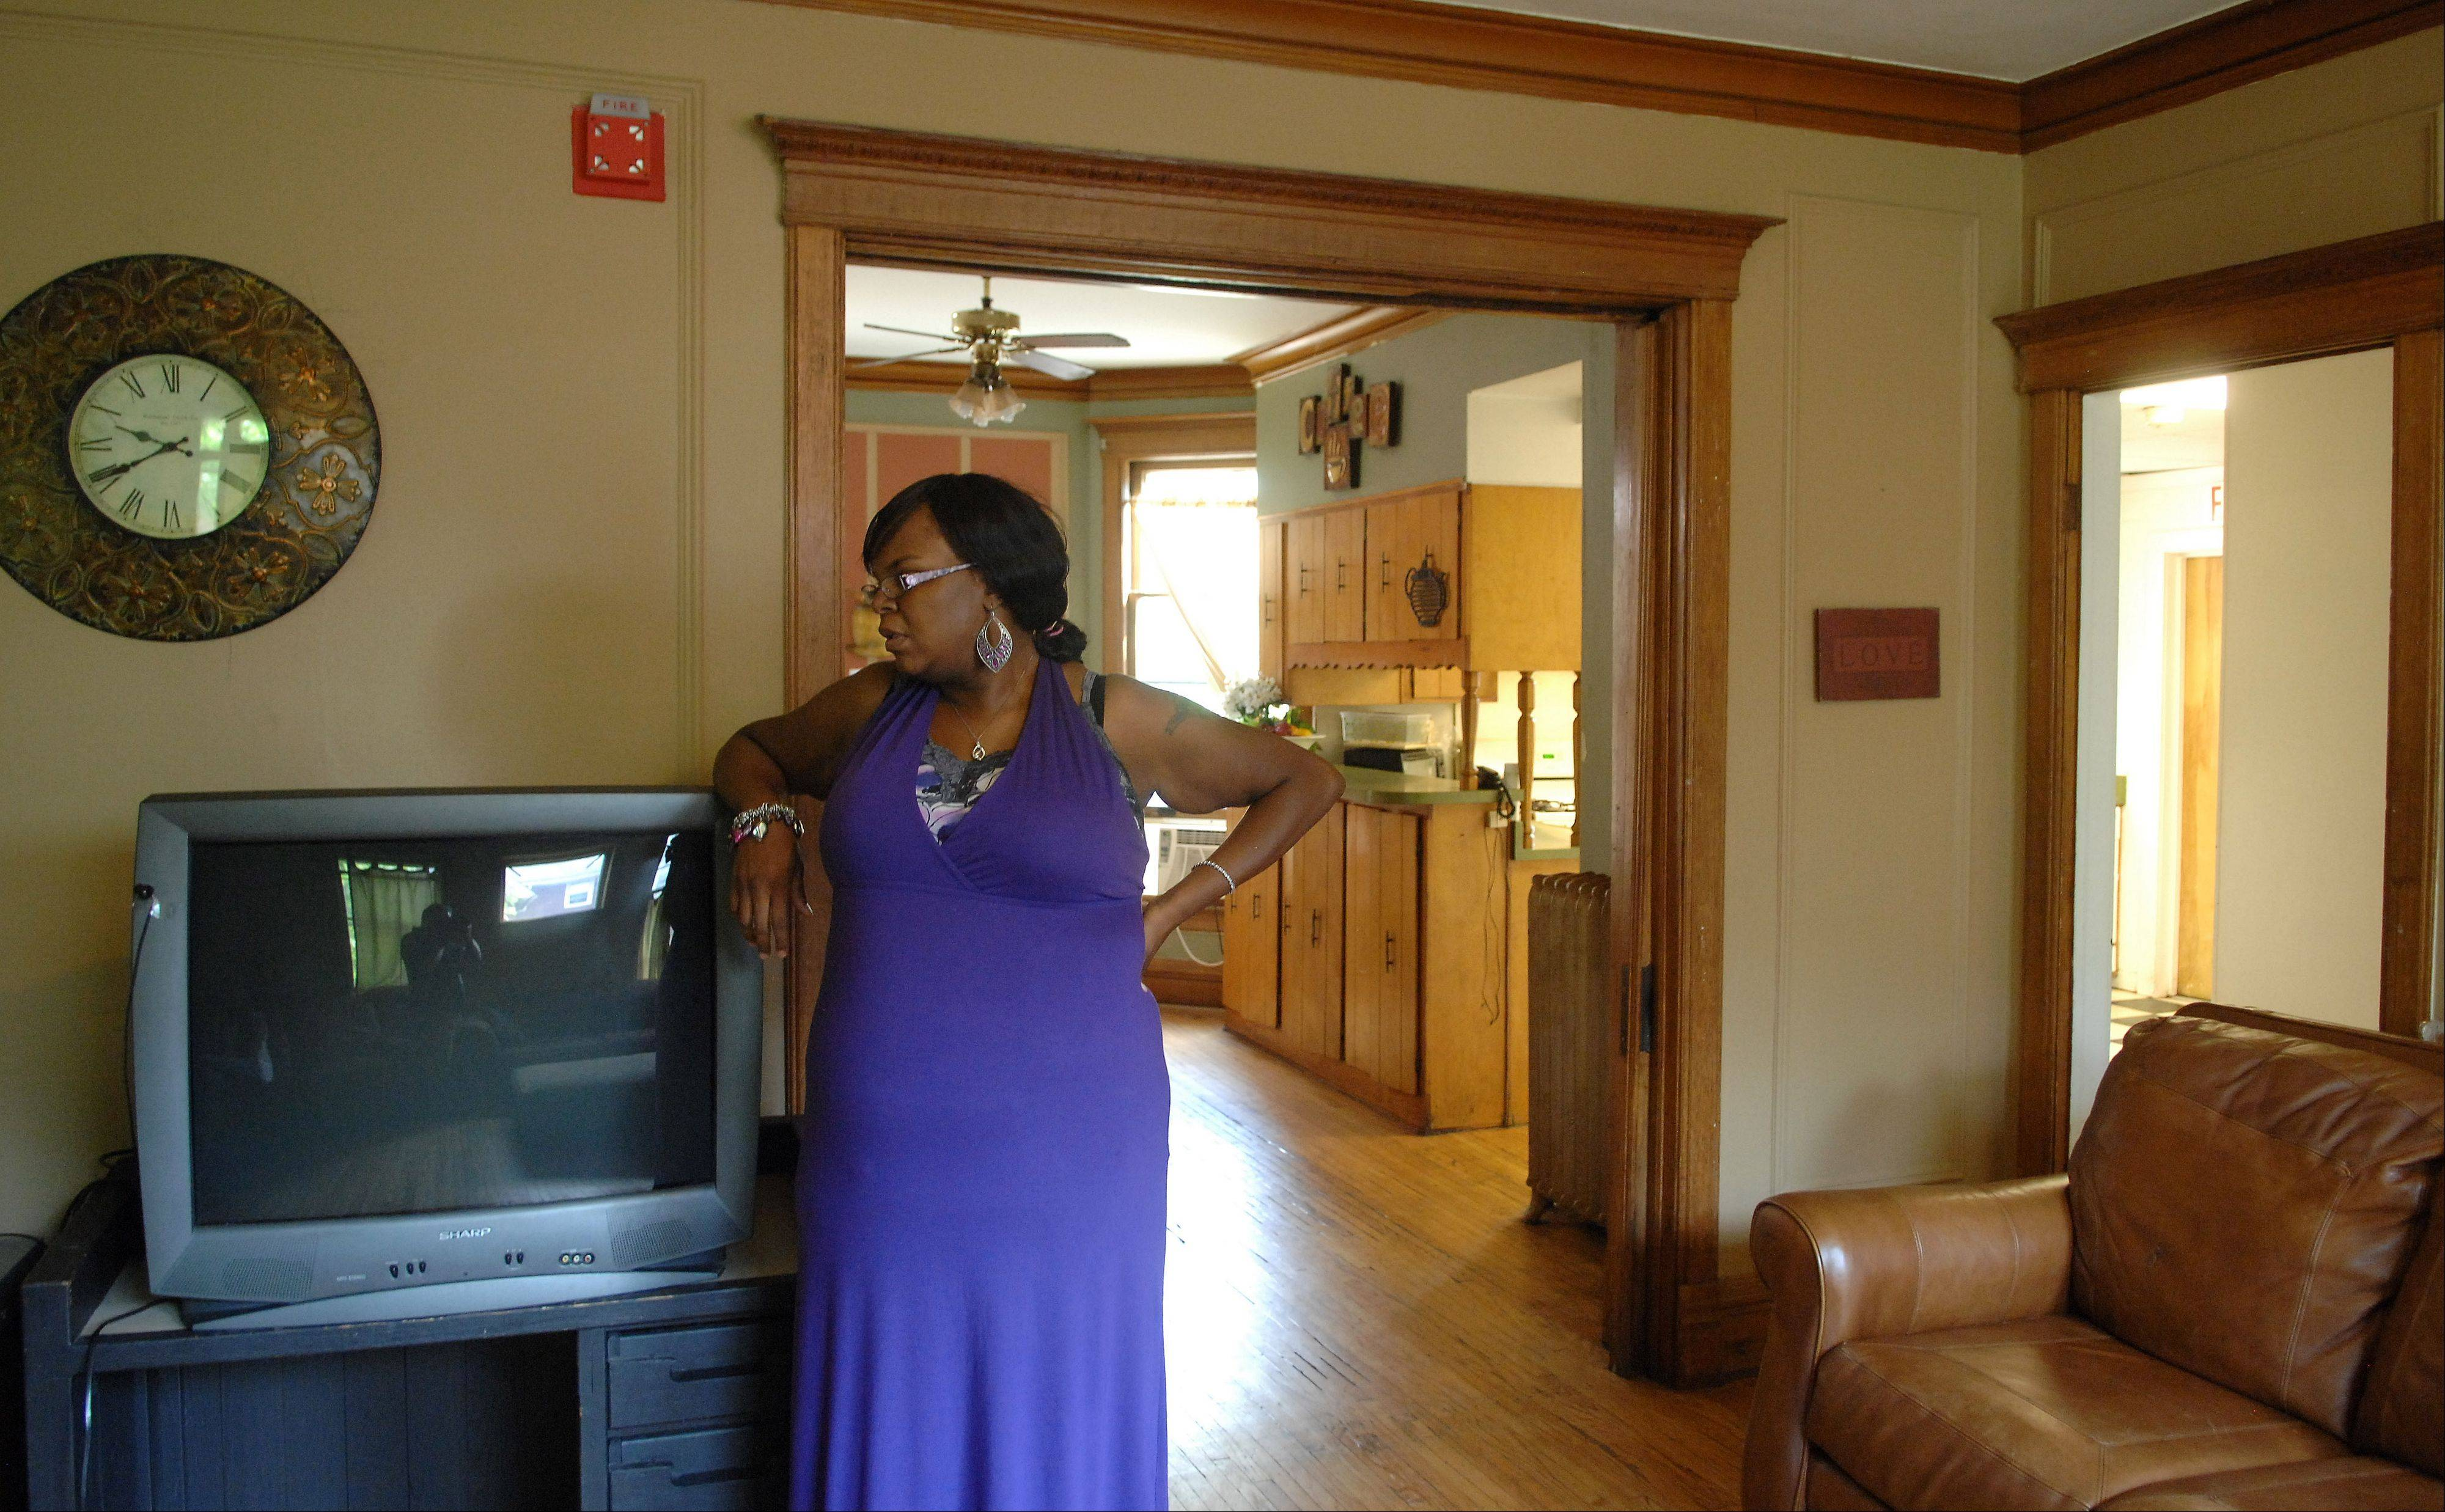 Andrea Johnson, a group home supervisor for the Larkin Center, stands in the living area of an Elgin group home that houses eight girls who have been the victims of physical, emotional and sexual abuse.